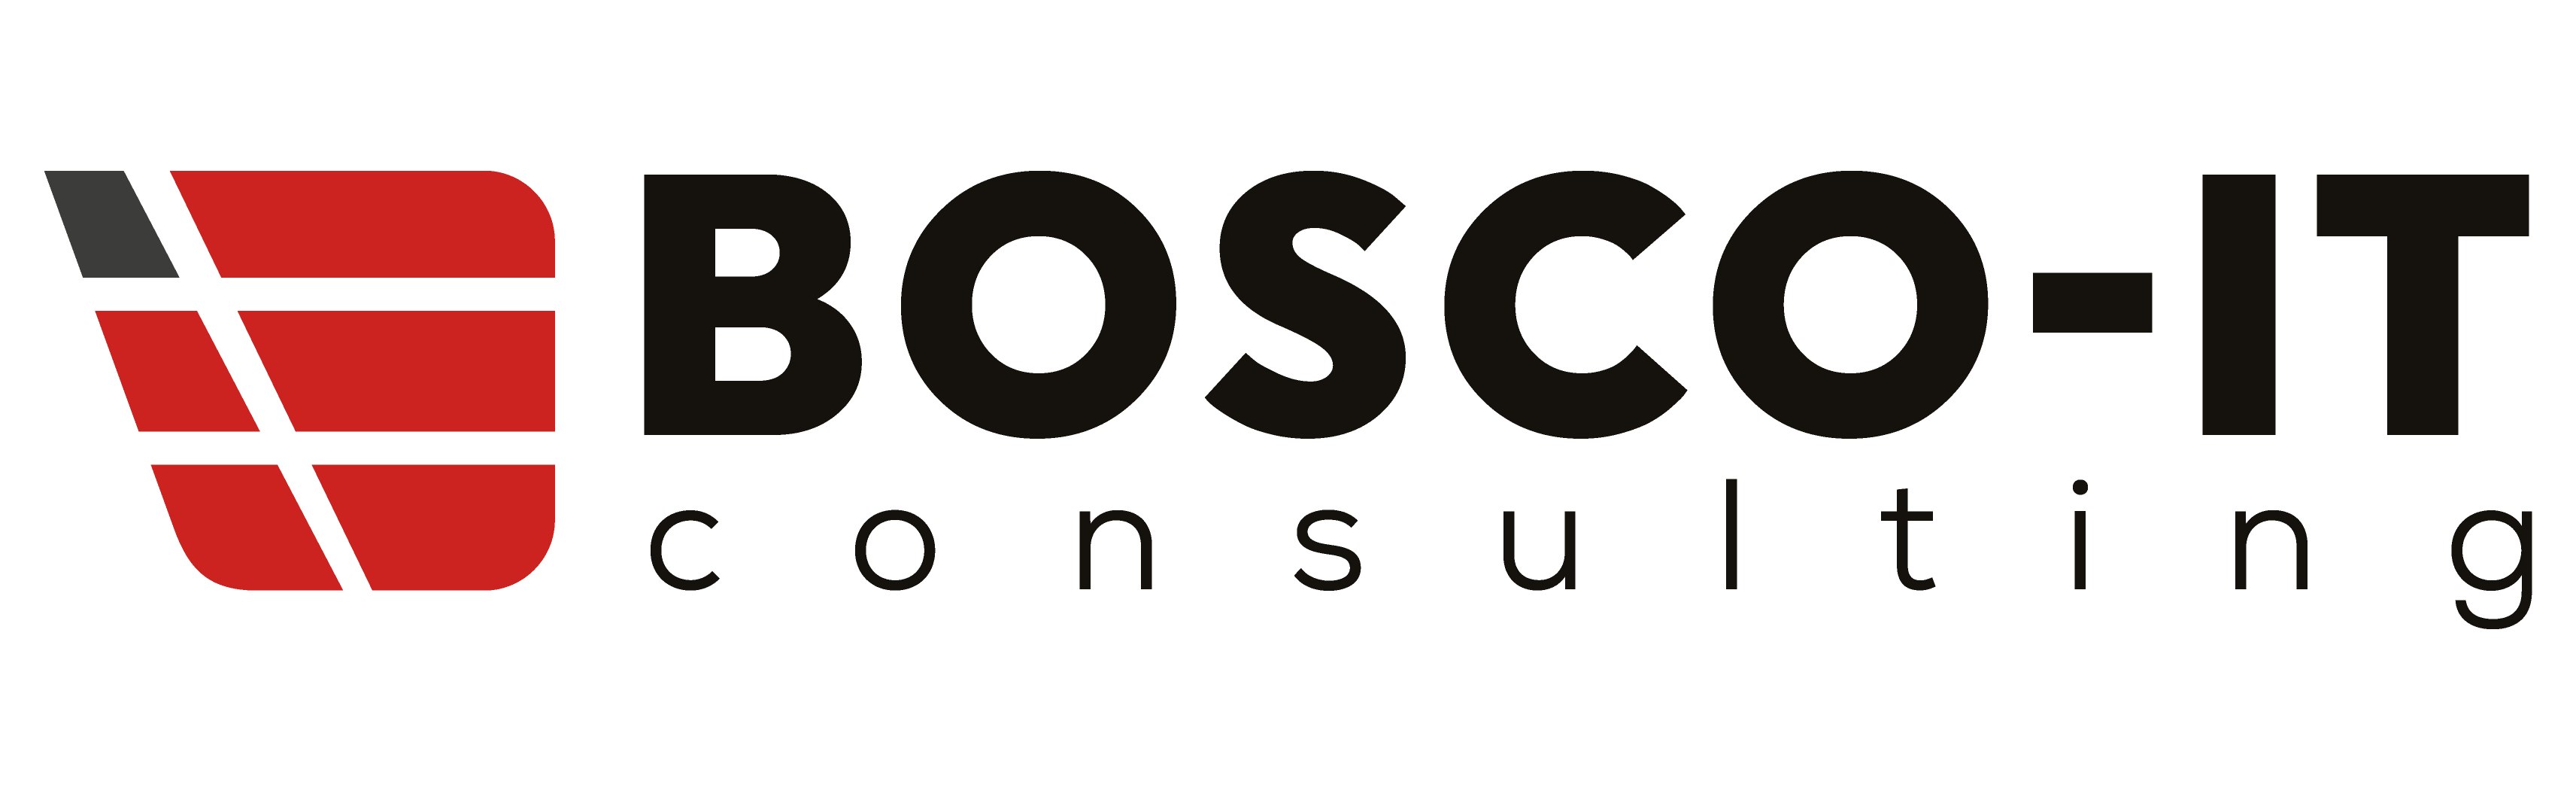 BOSCO-IT CONSULTING Bt.